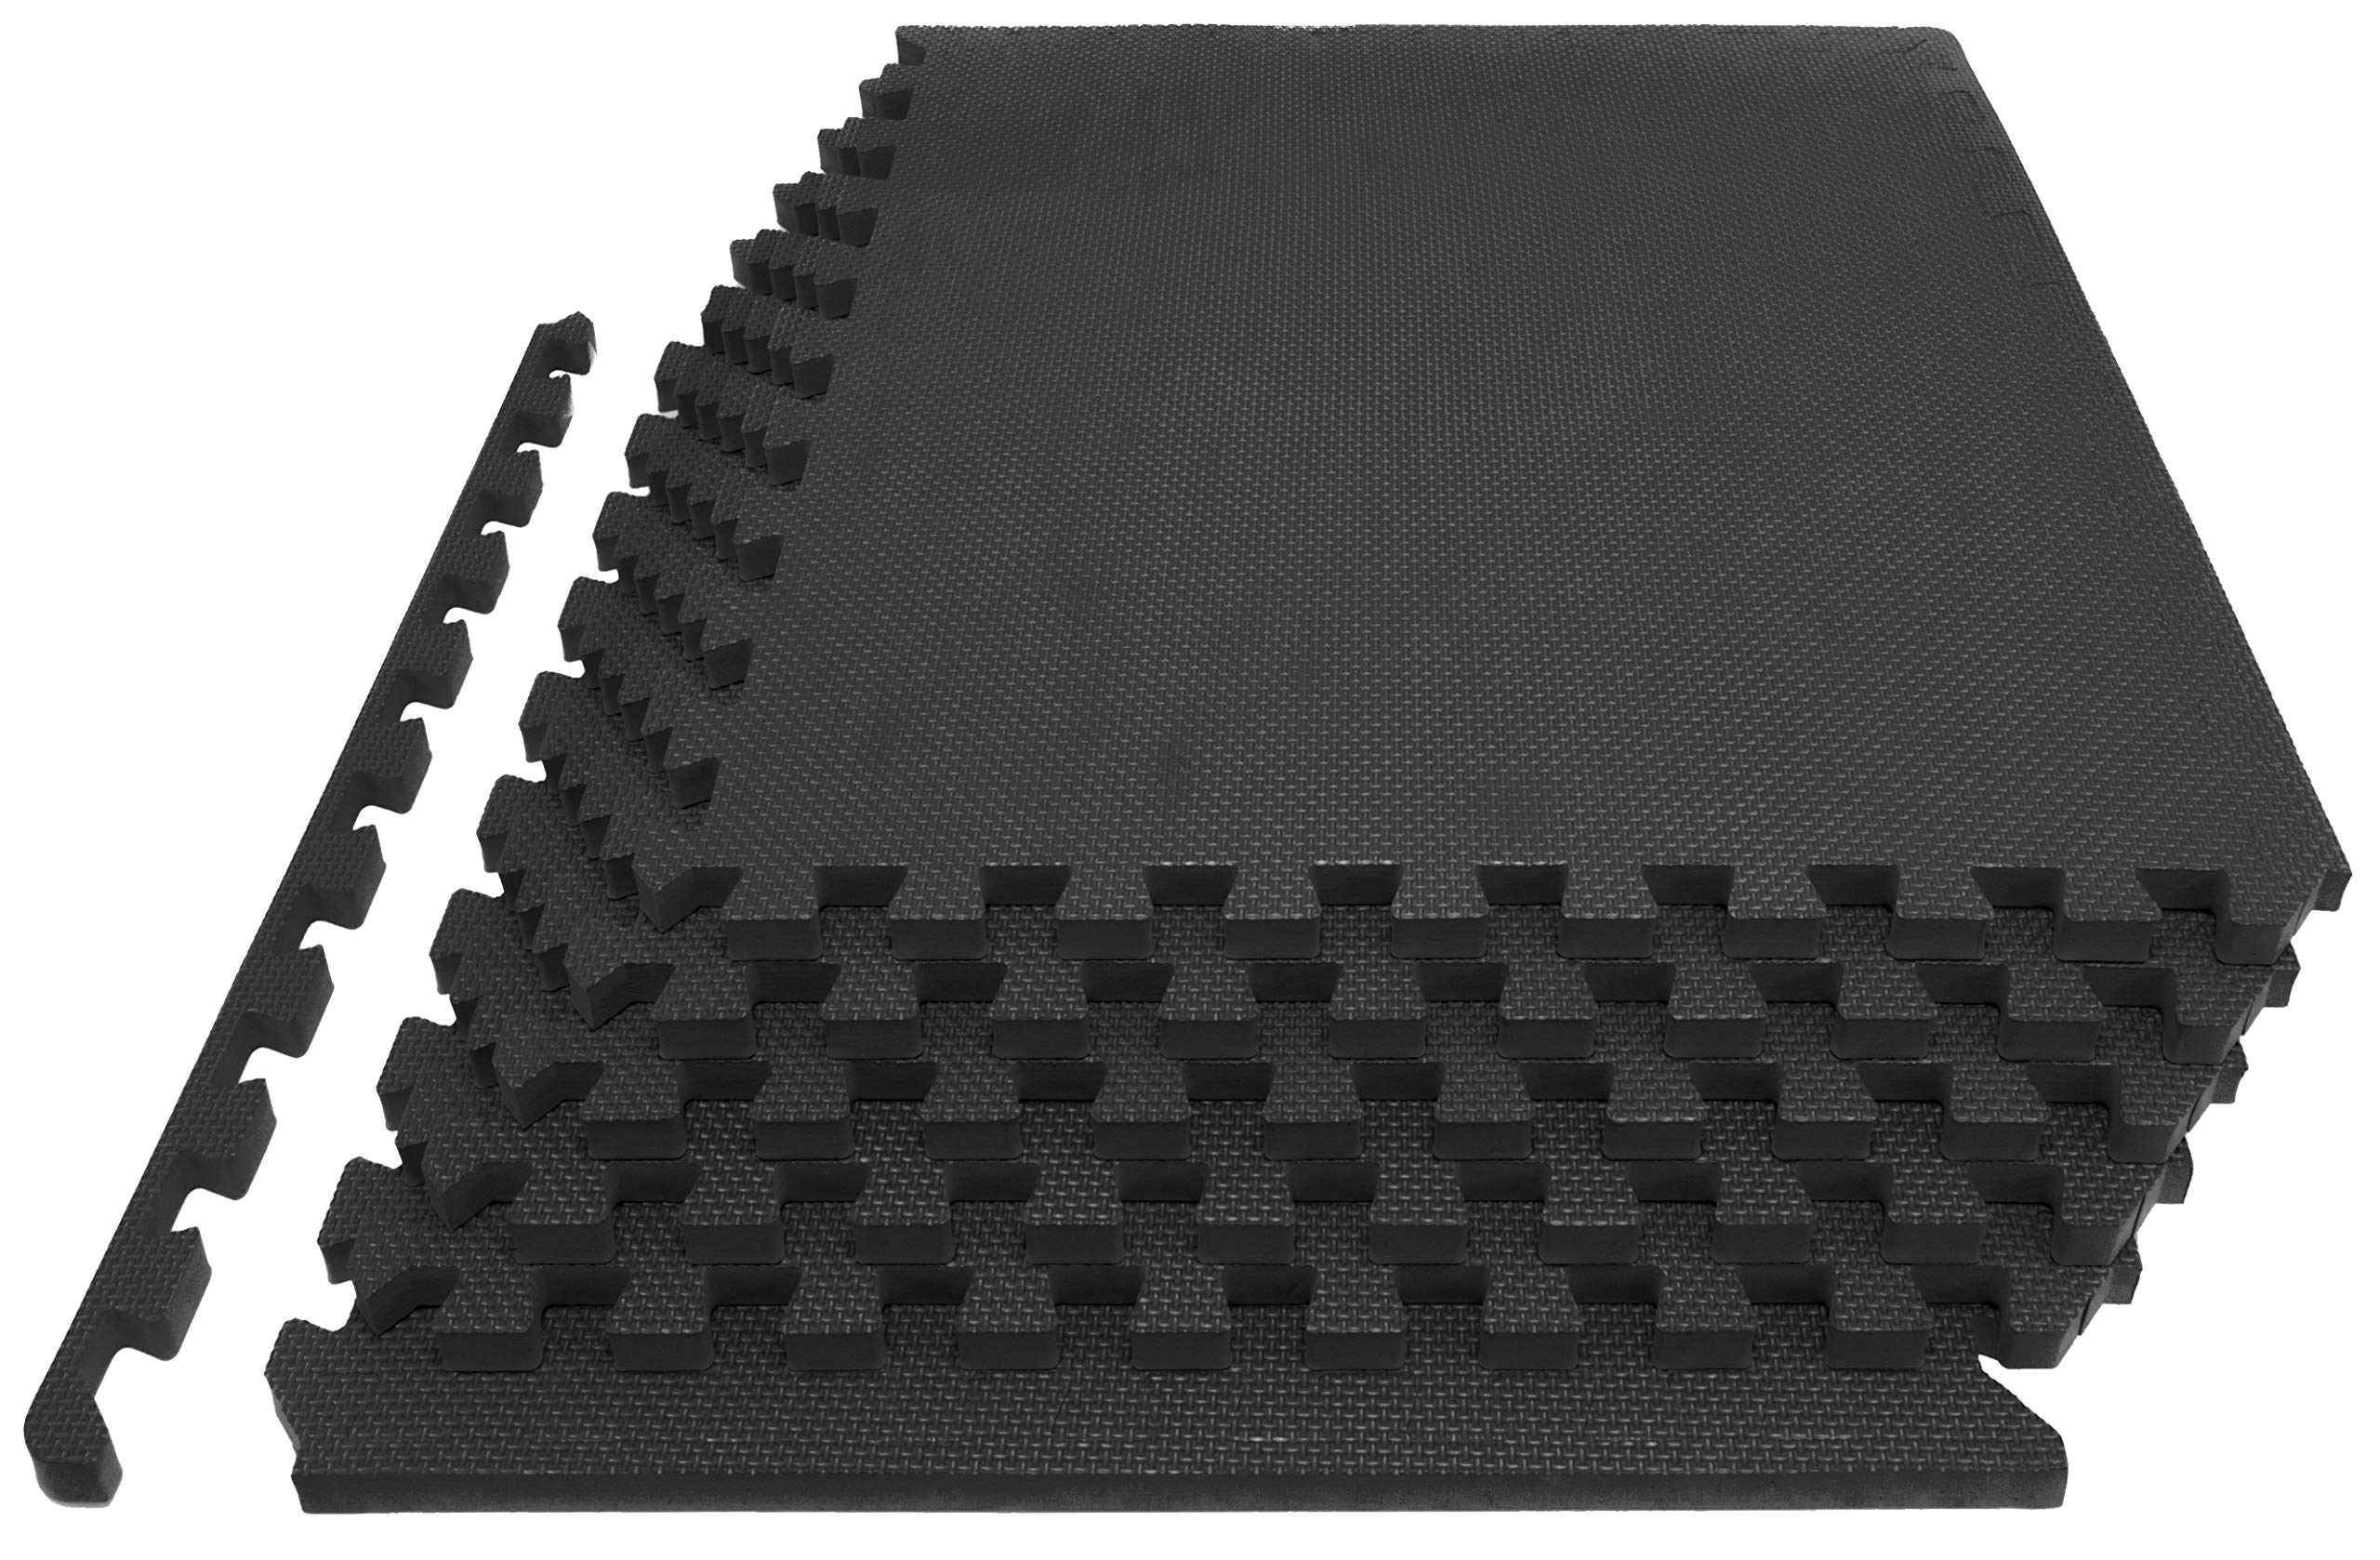 "Prosource Fit Extra Thick Puzzle Exercise Mat 1"", EVA Foam Interlocking Tiles for Protective, Cushioned Workout Flooring for Home and Gym Equipment, Black by ProsourceFit (Image #1)"